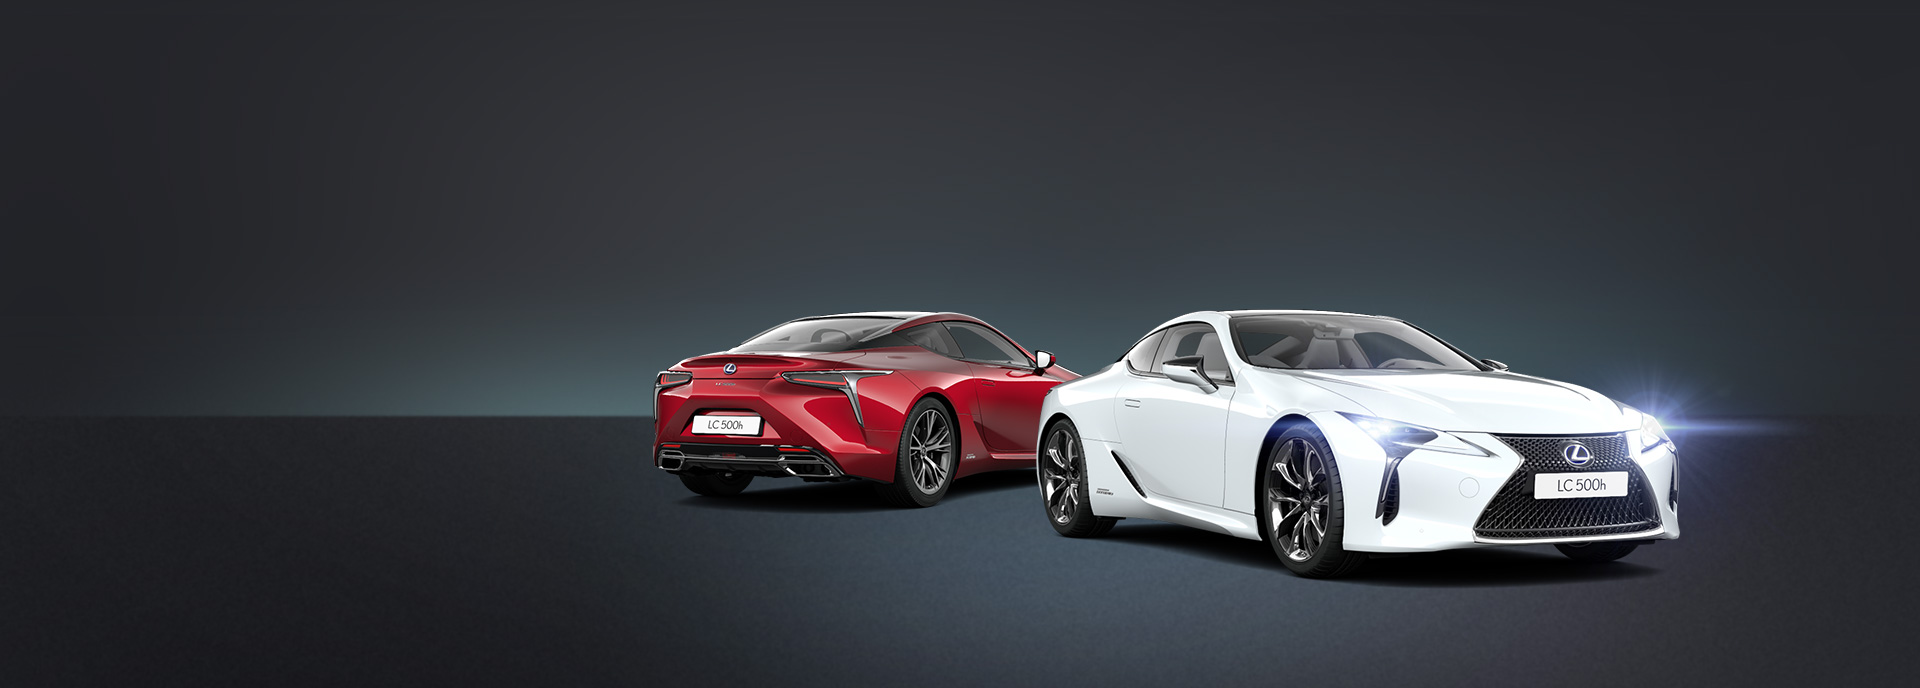 2017 Lexus LC 500h build promo